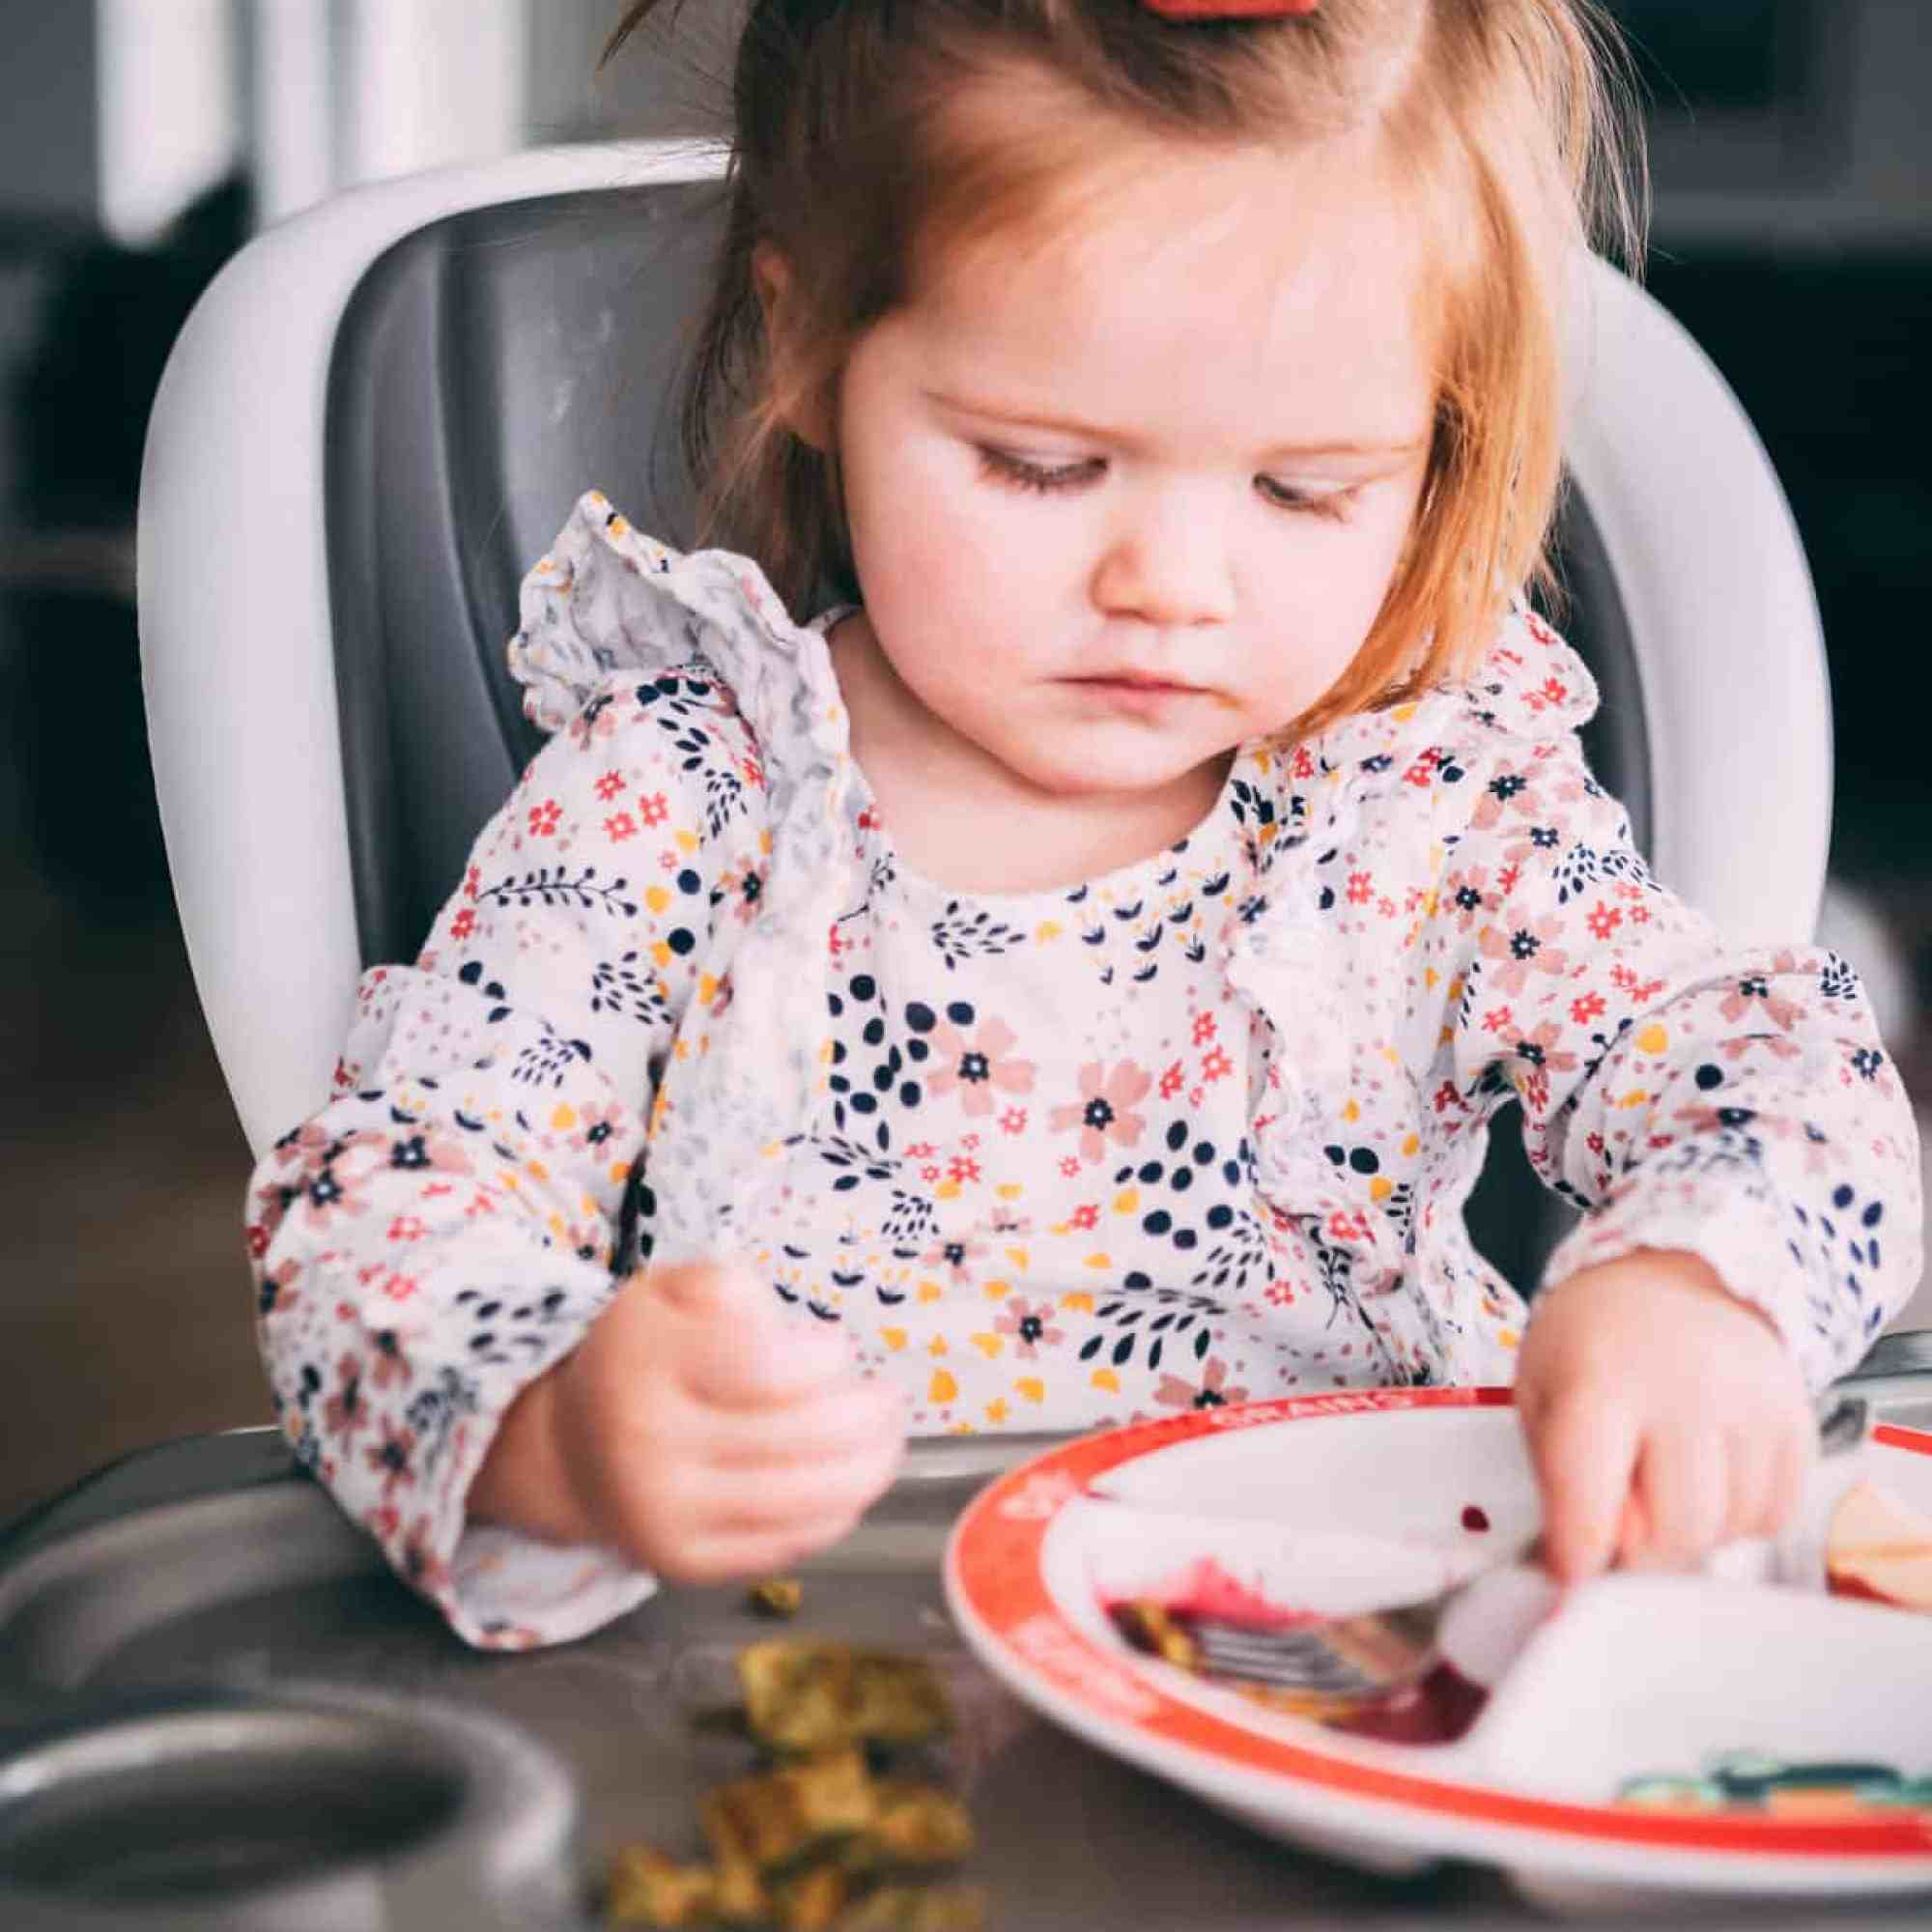 James sits in her highchair looking down at her plate to eat a cut up waffle.